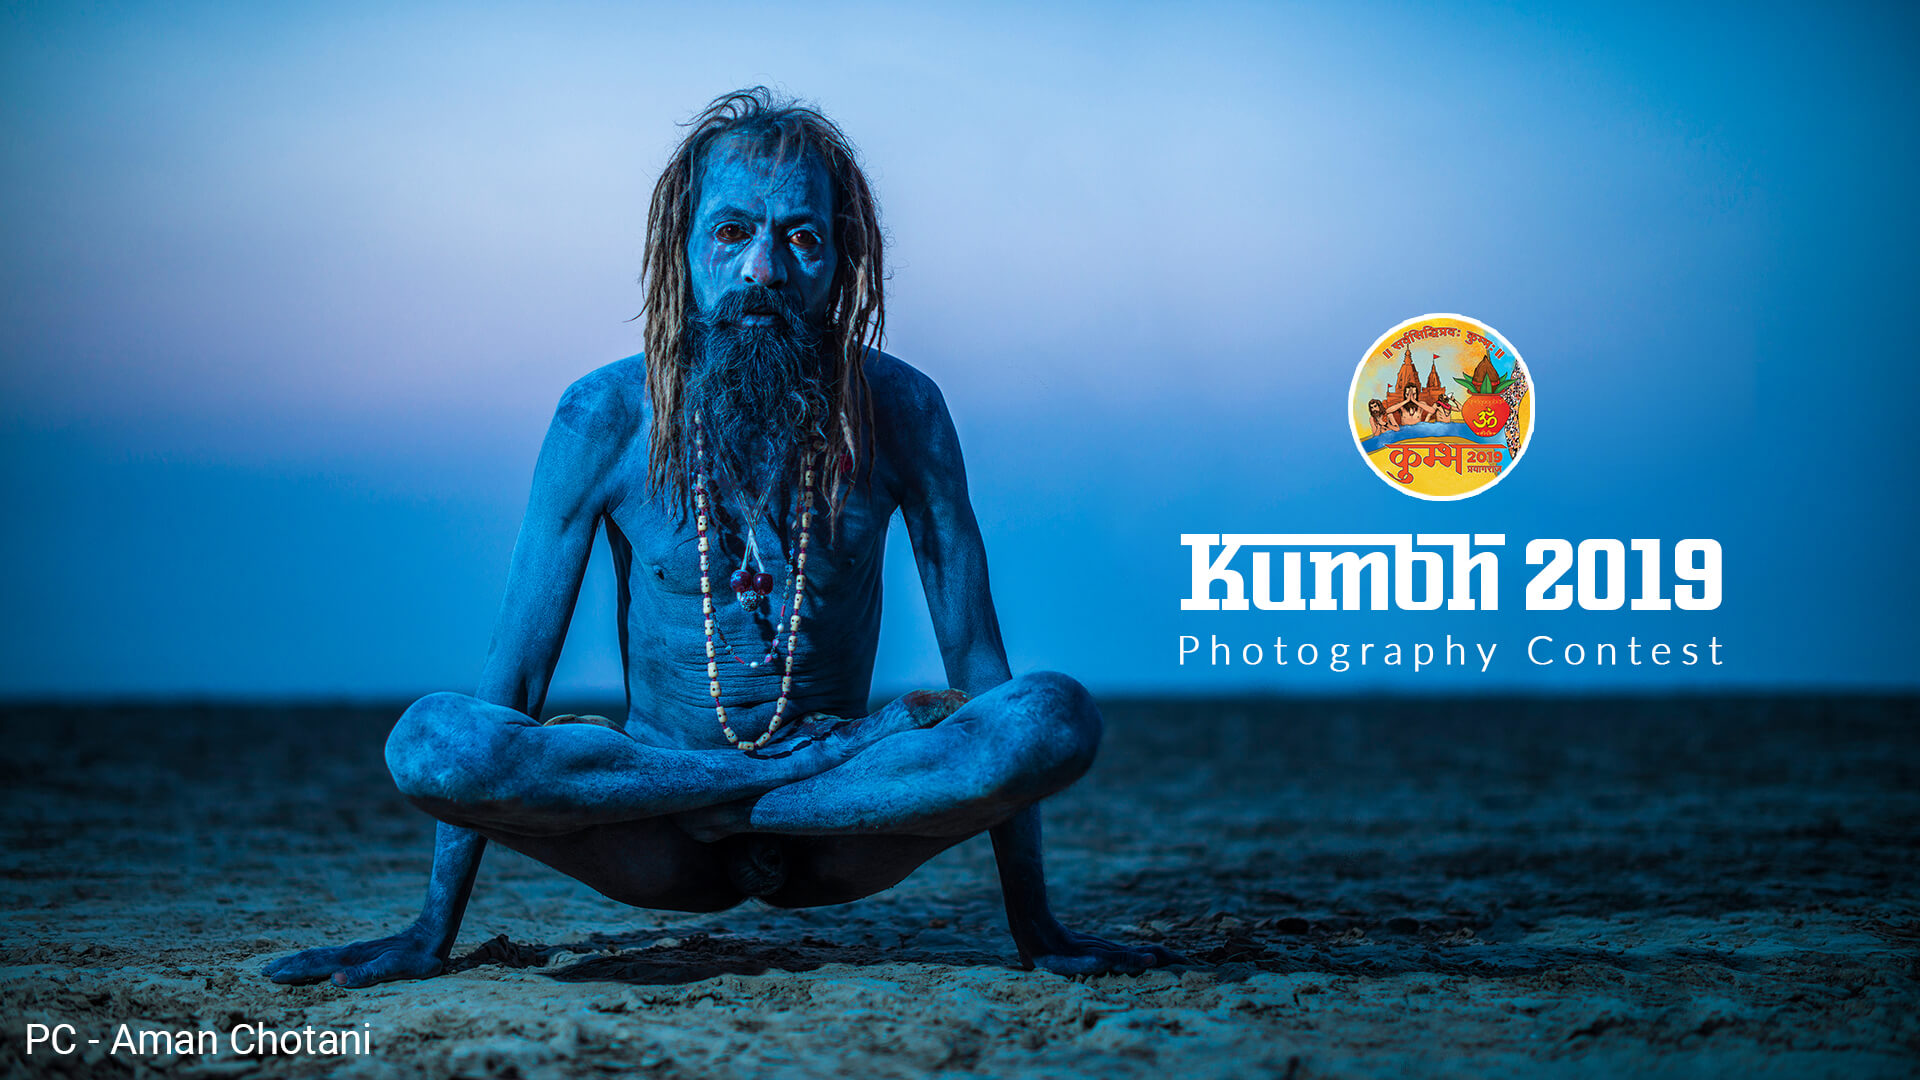 Kumbh Mela 2019 Photography Contest